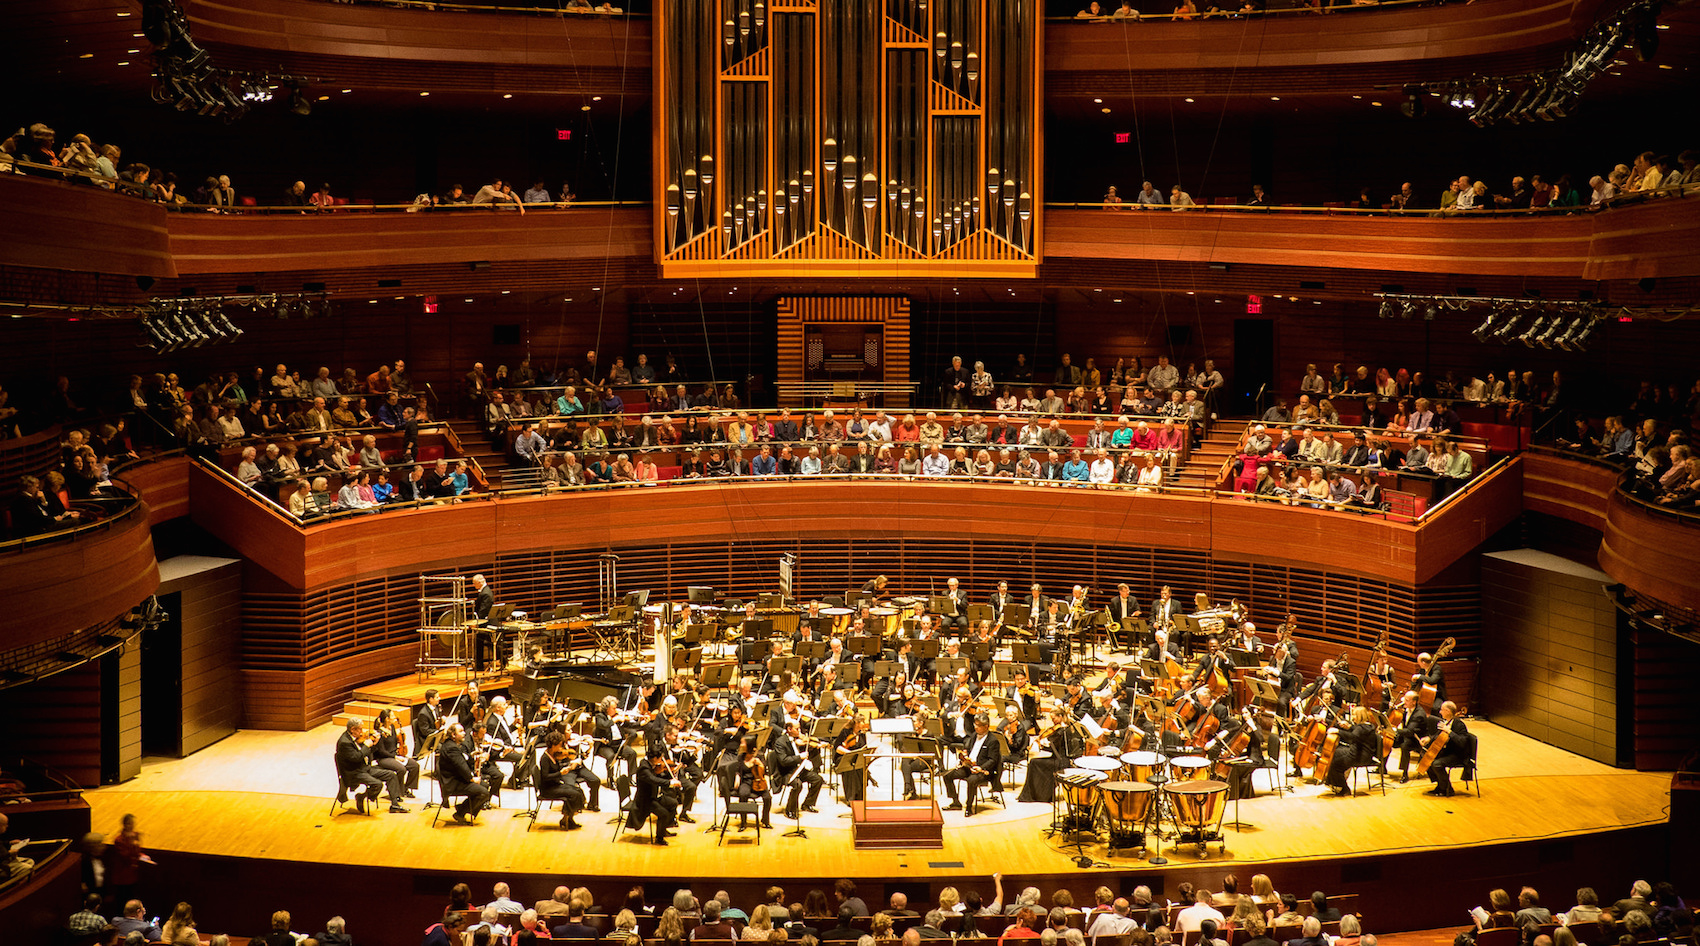 Philadelphia Orchestra (flickr/lumiereimages)